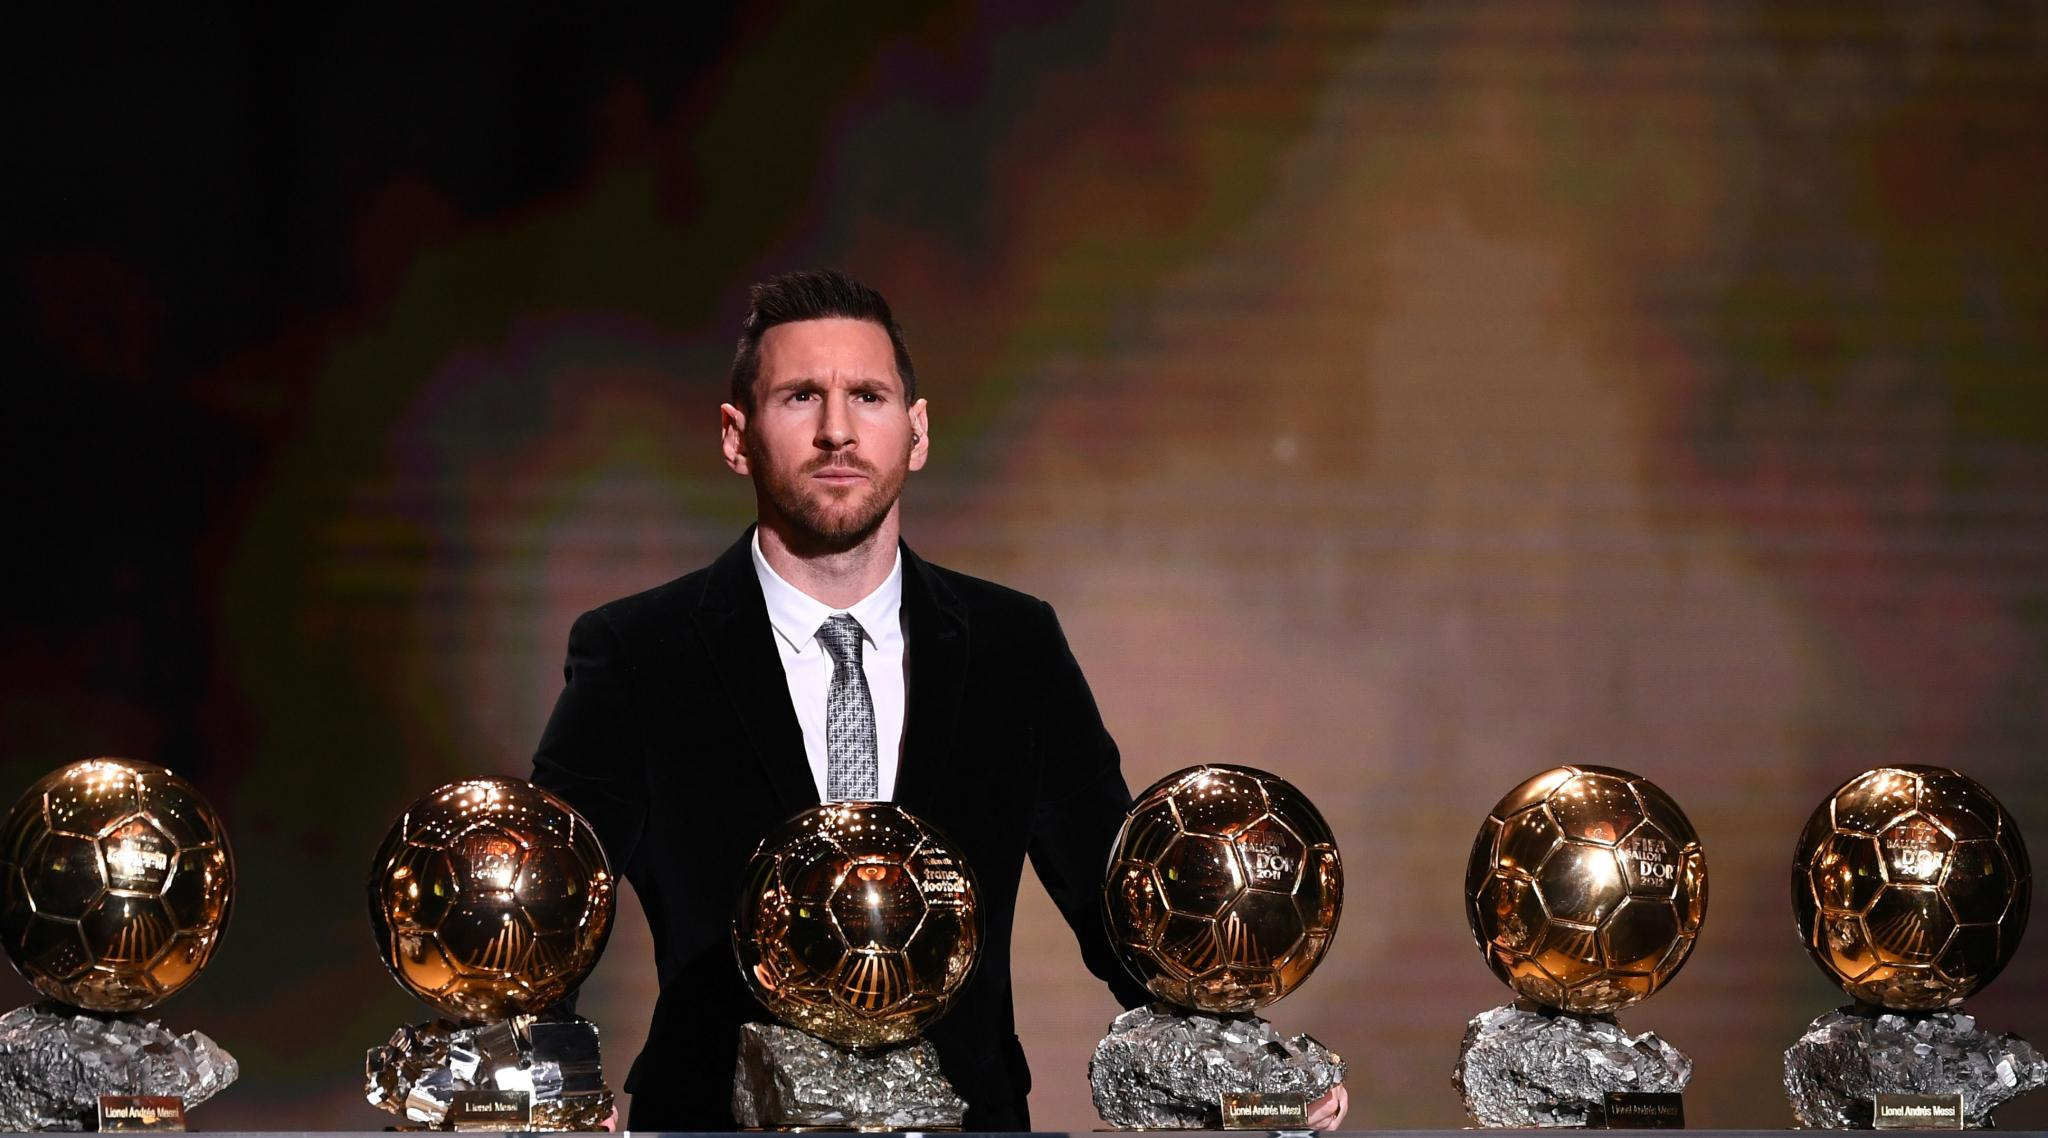 Lionel Messi Wins Ballon d'Or 2019; David Beckham, Ronaldo, Gary Lineker & Others Congratulate the Barcelona Star For Winning it The Sixth Time!